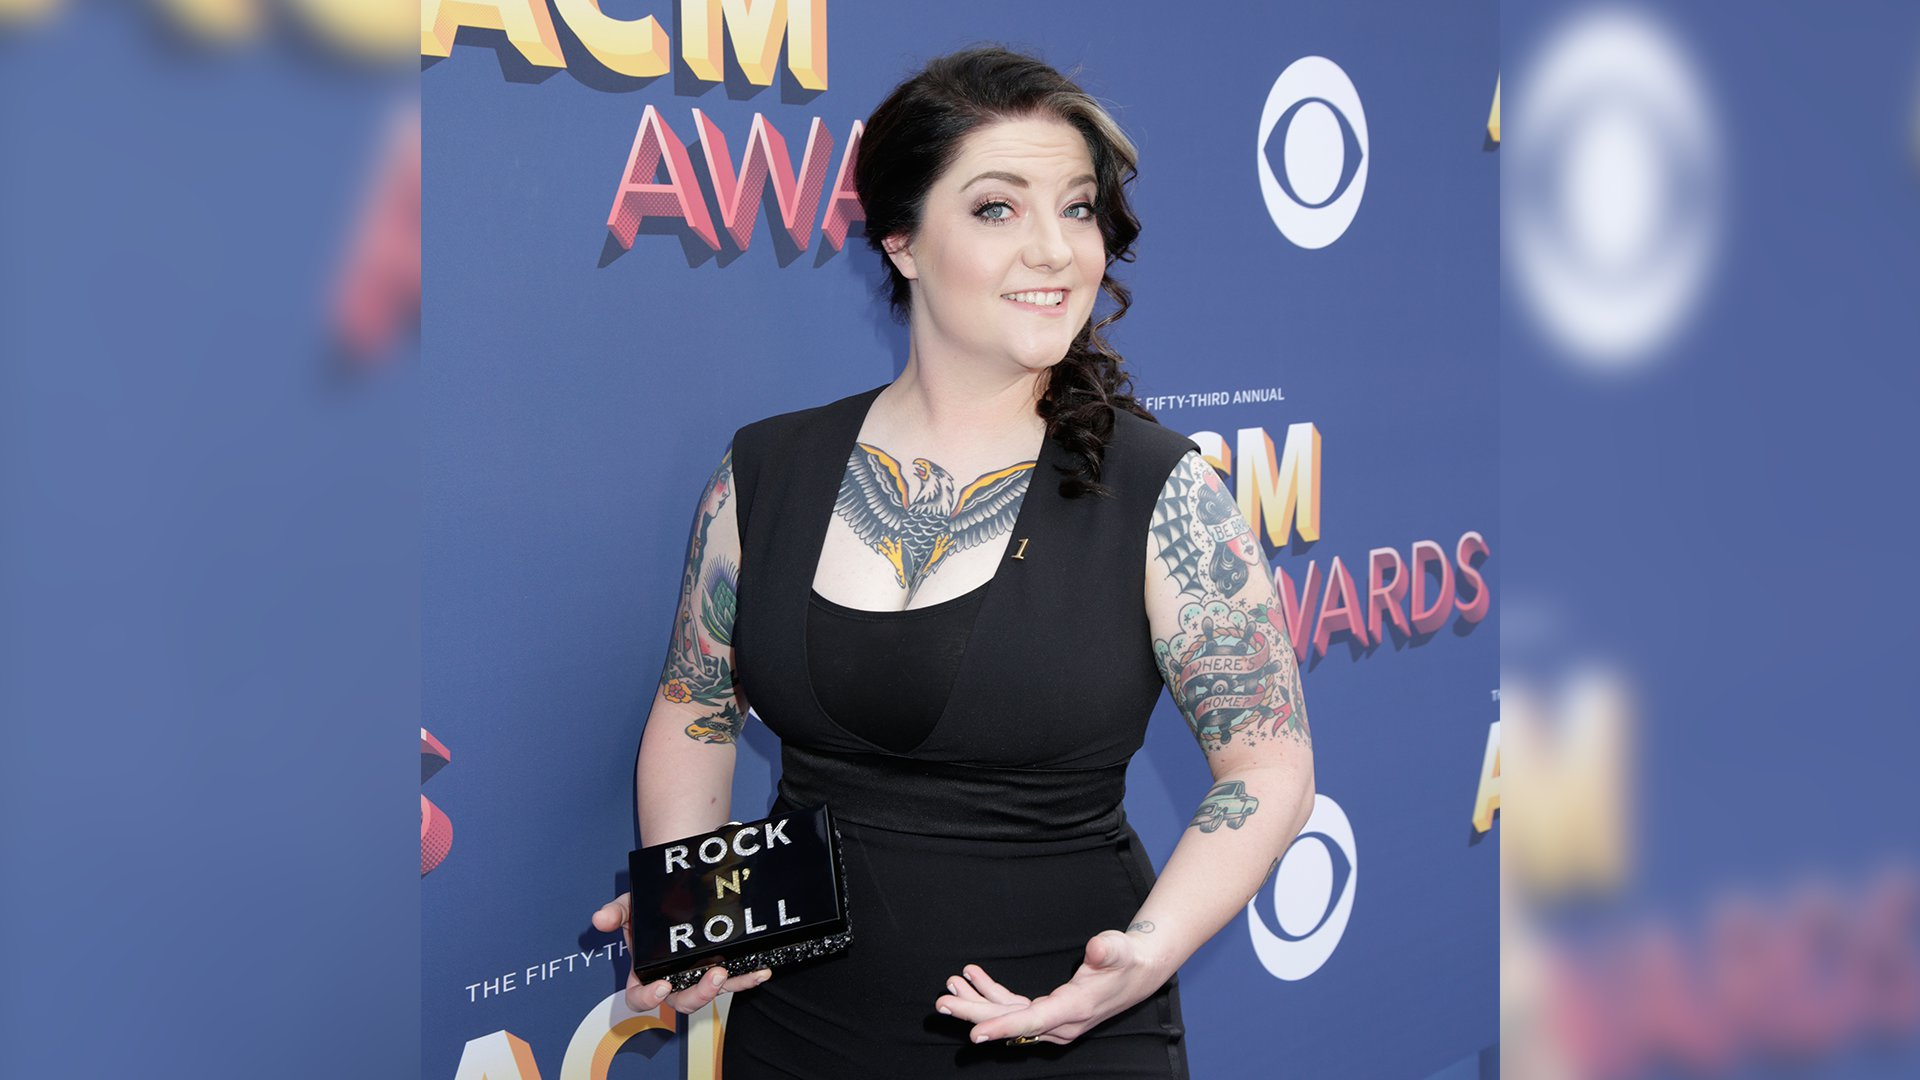 Singer Ashley McBryde pairs a simple black dress with her colorful tattoos.